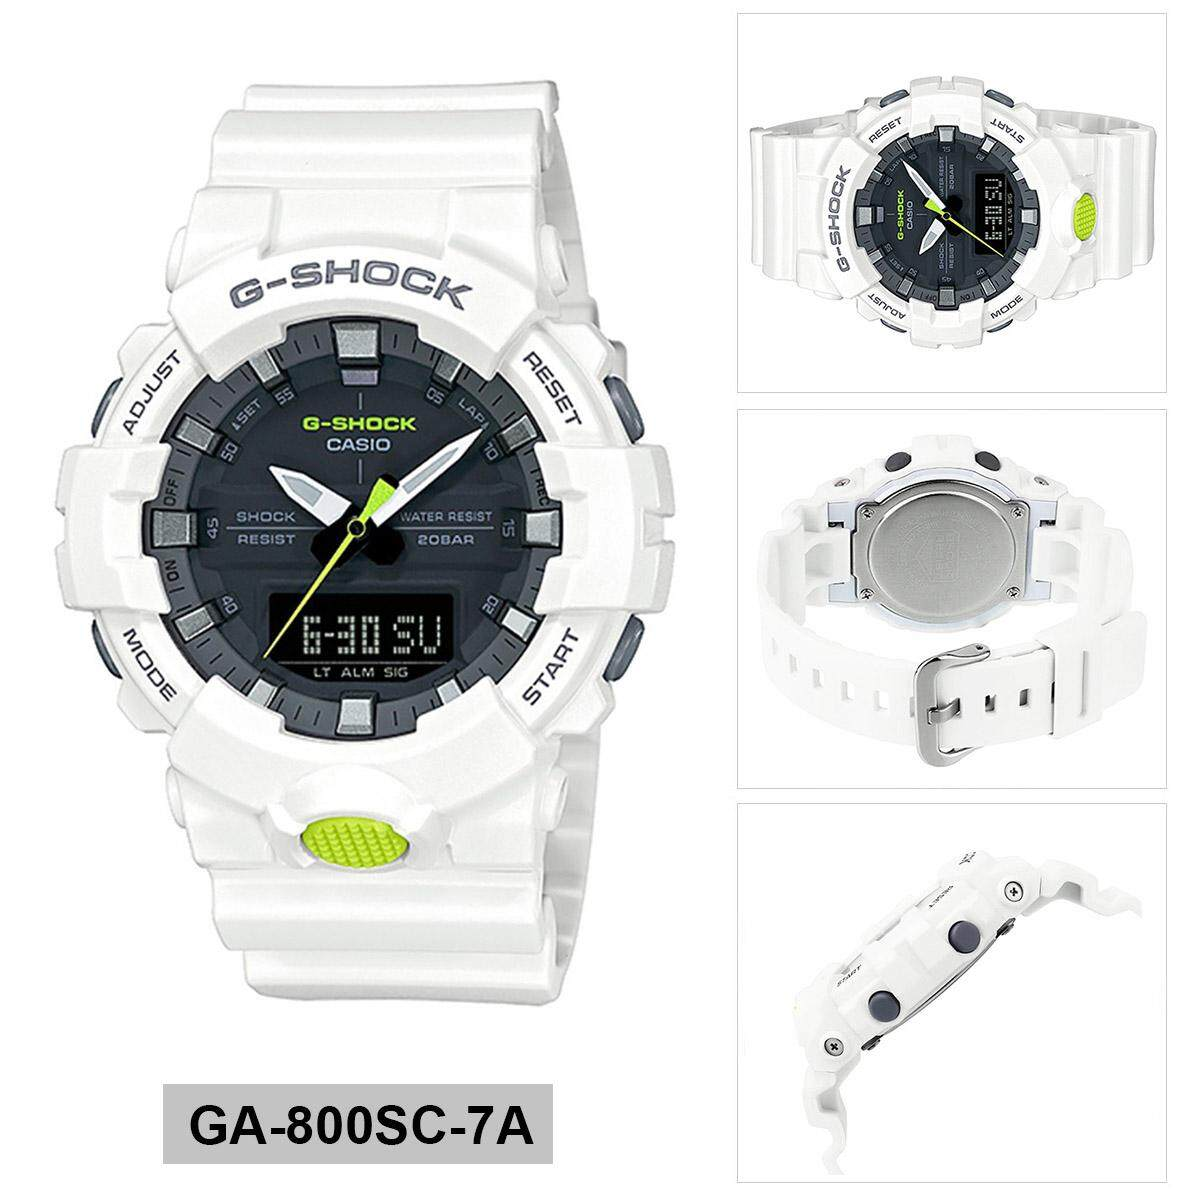 Buy Sell Cheapest Strap Gshock Ga Best Quality Product Deals Casio G Shock 7900 3dr Jam Tangan Pria Resin Green White Case Mens Nwt Warranty